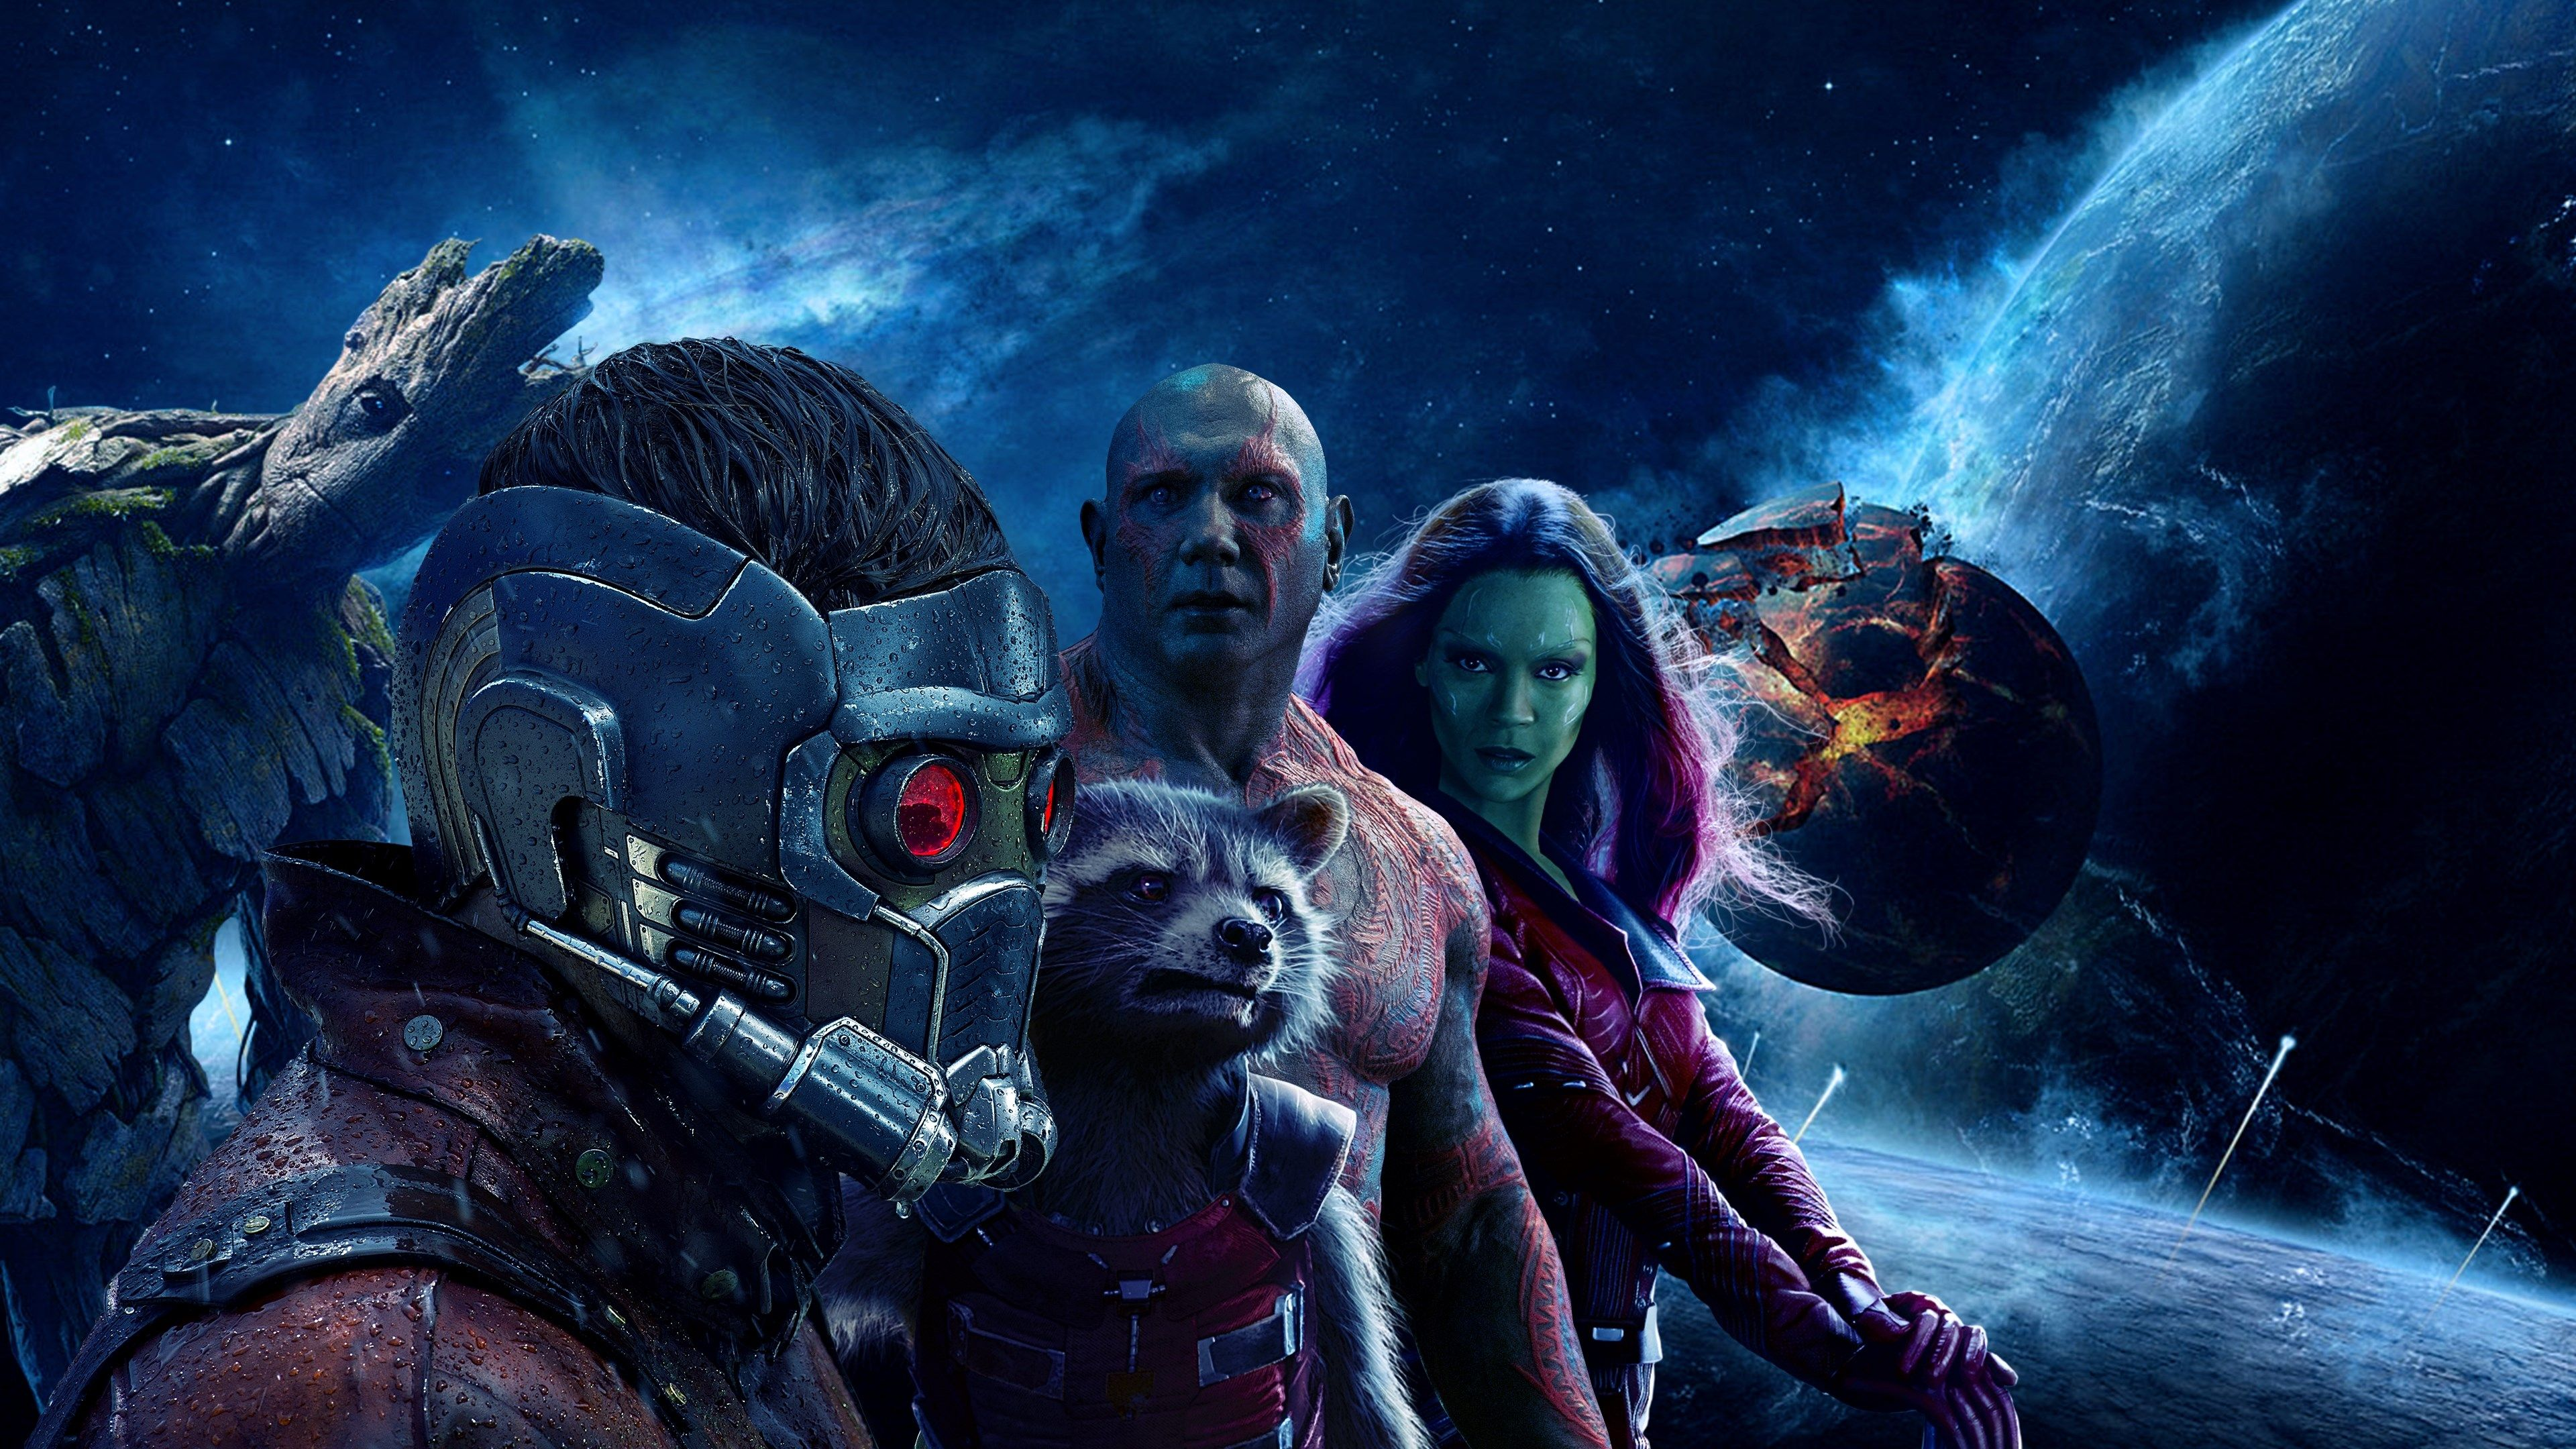 Guardians Of The Galaxy Wallpaper Hd Wallpapers Guardians Of The Galaxy Galaxy Hd Drax The Destroyer